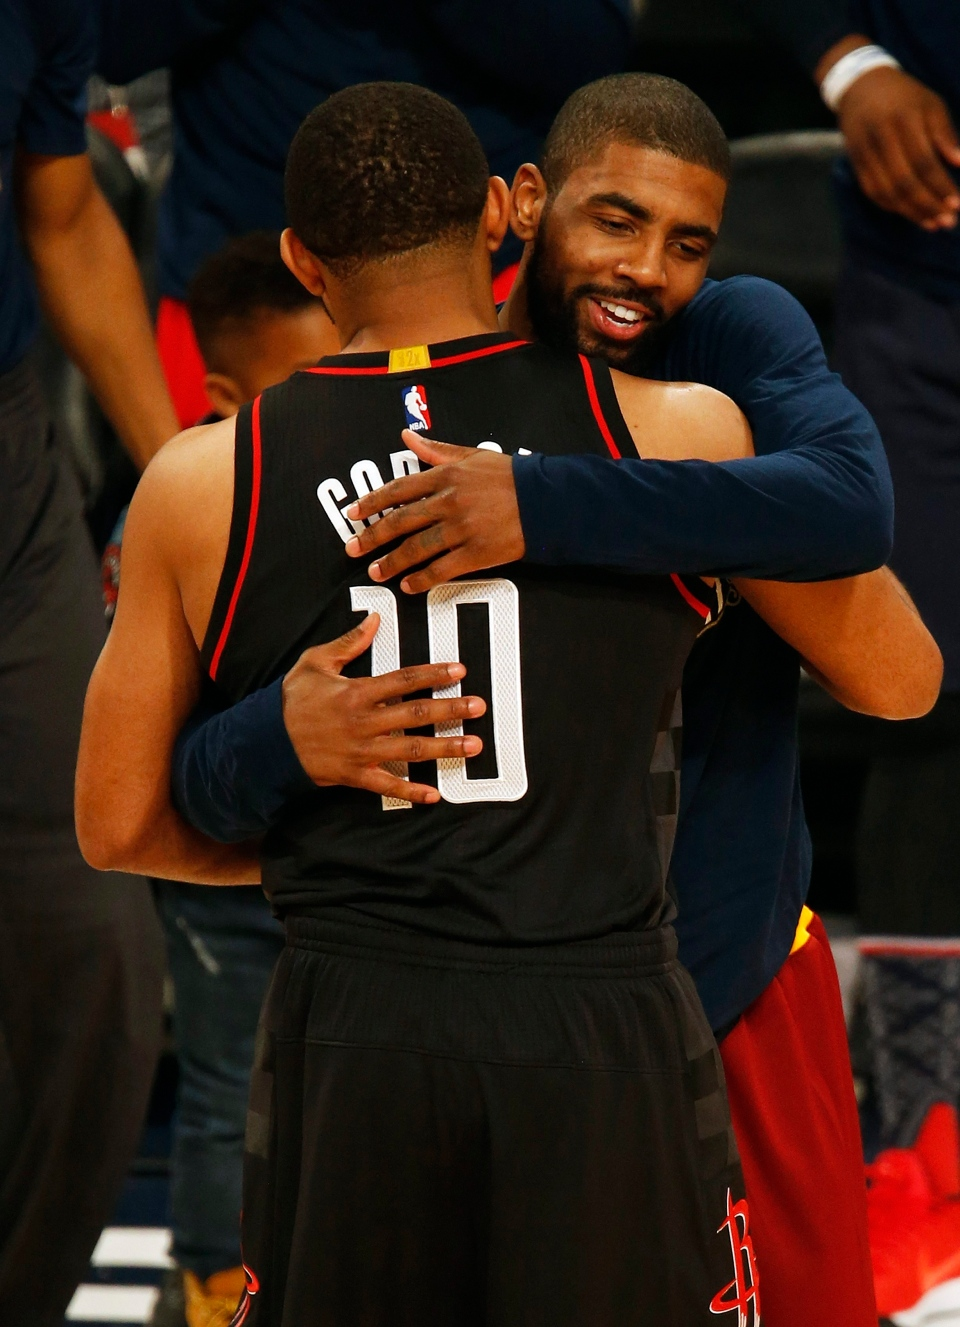 Cleveland Cavaliers Guard Kyrie Irving hugs Houston Rockets guard Eric Gordon (10) after Gordon won the All-Star 3-point shootout as part of the NBA All-Star Saturday Night events in New Orleans, Saturday, Feb. 18, 2017. (AP / Max Becherer)